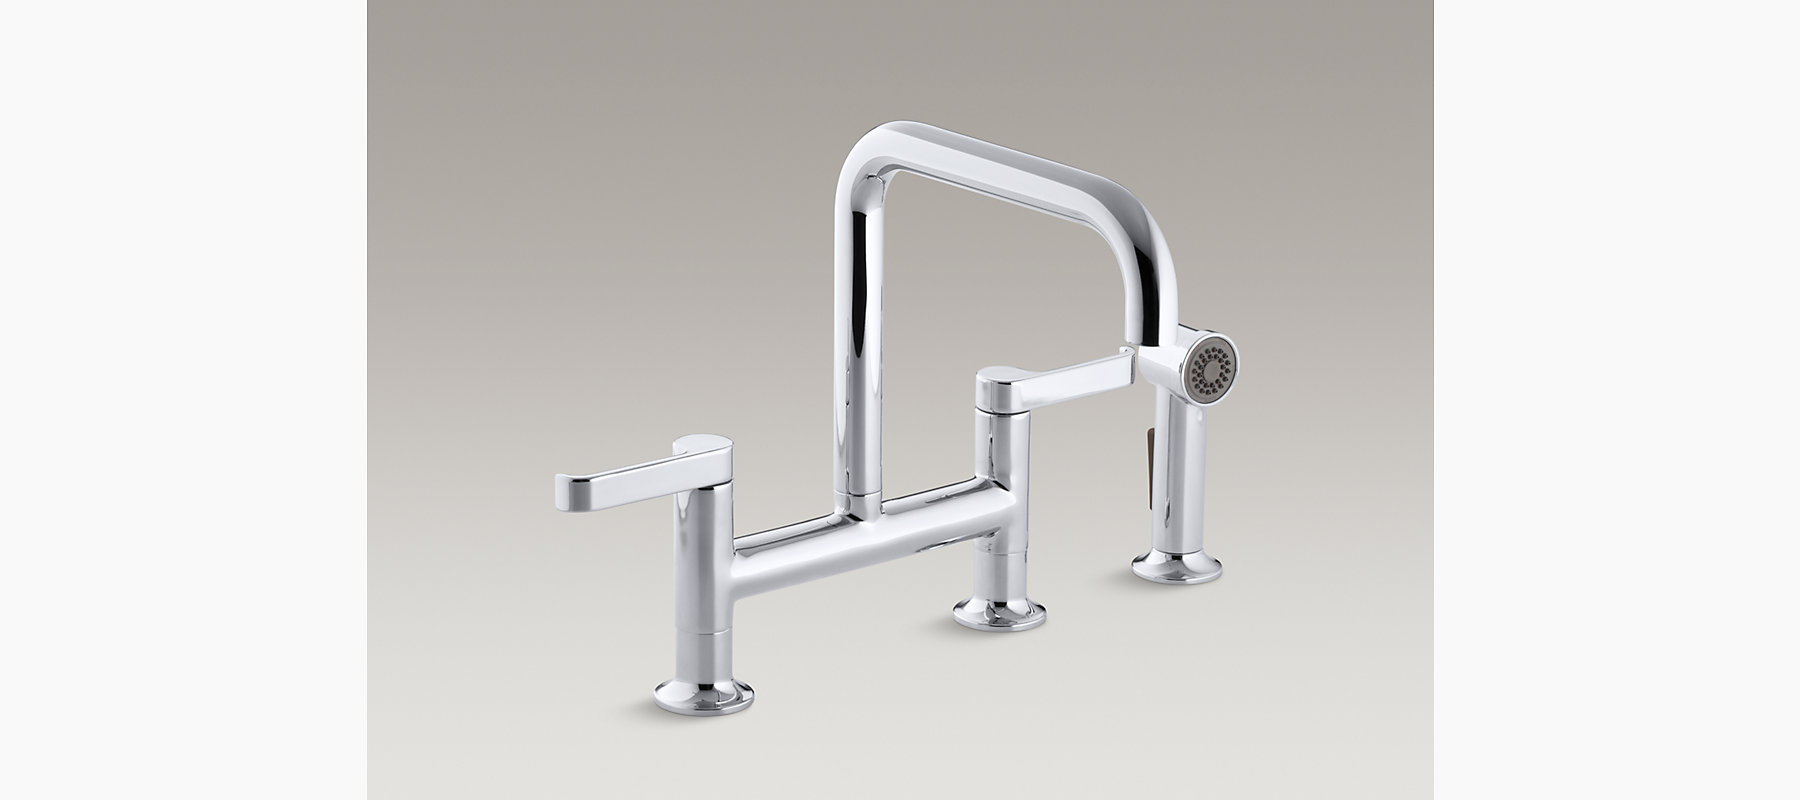 Torq Deck-Mount Bridge Kitchen Faucet with Sidespray | K-6126-4 ...